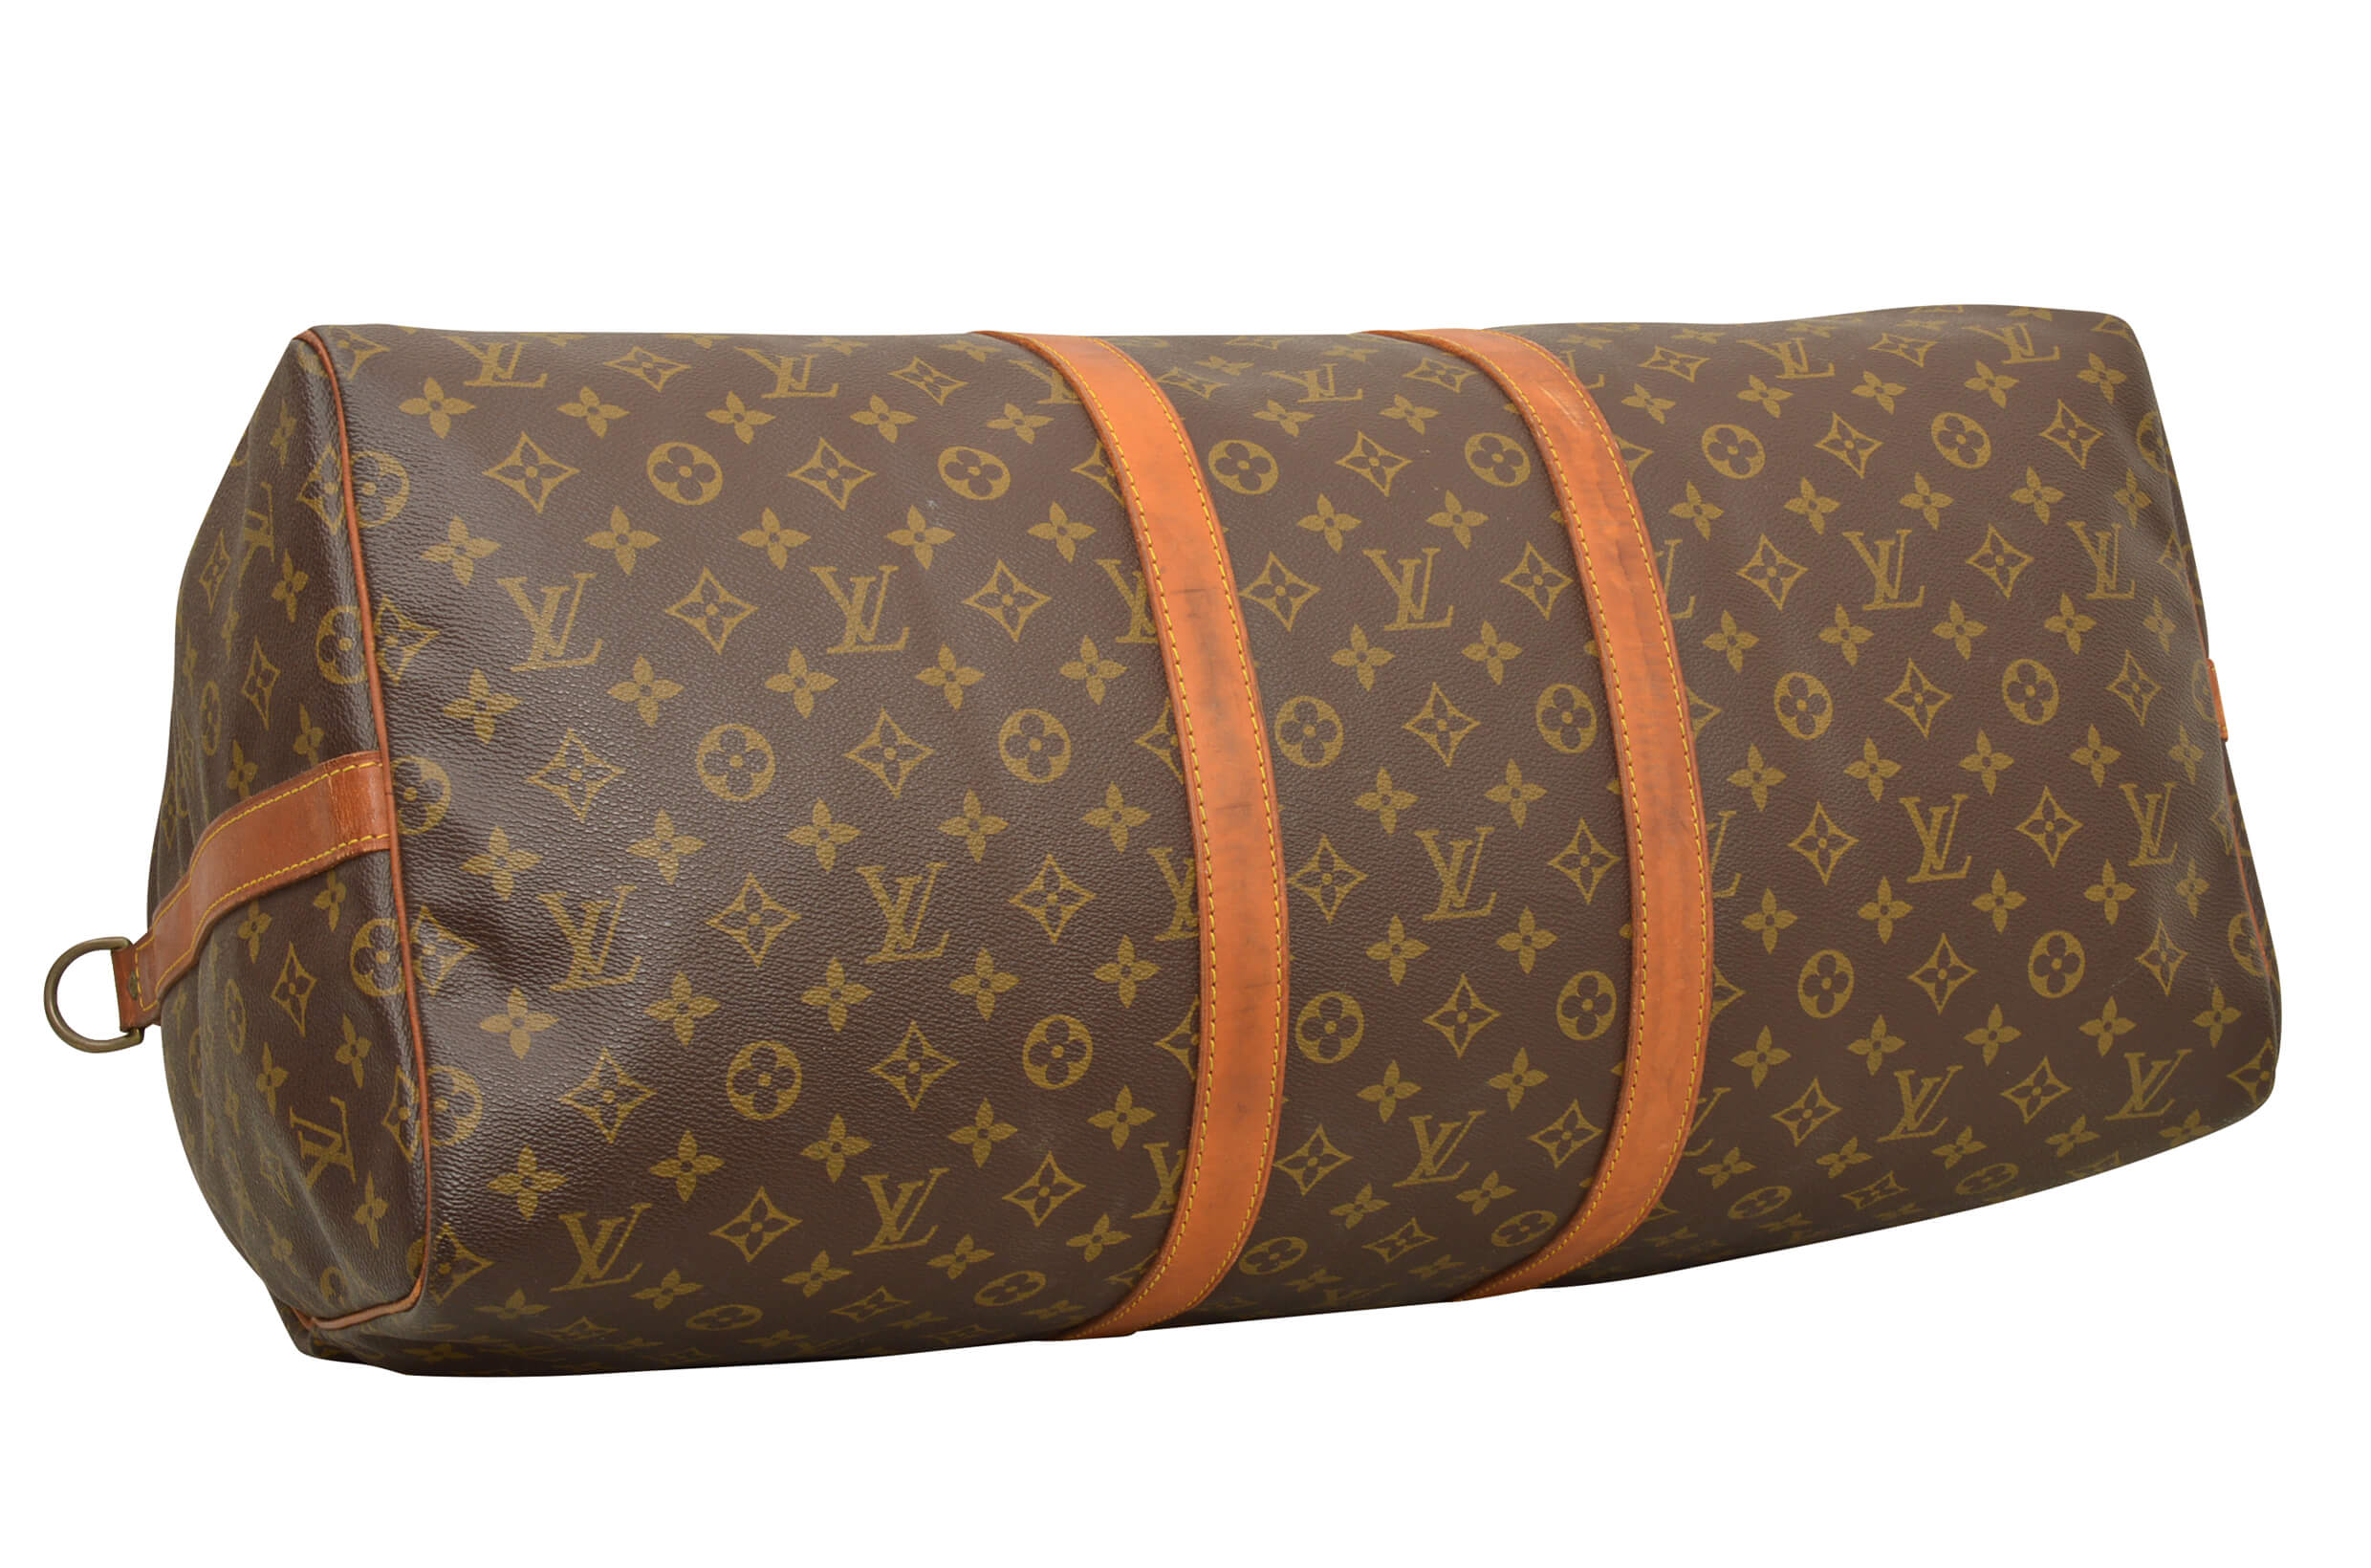 Louis Vuitton Bag Straps Uk Jaguar